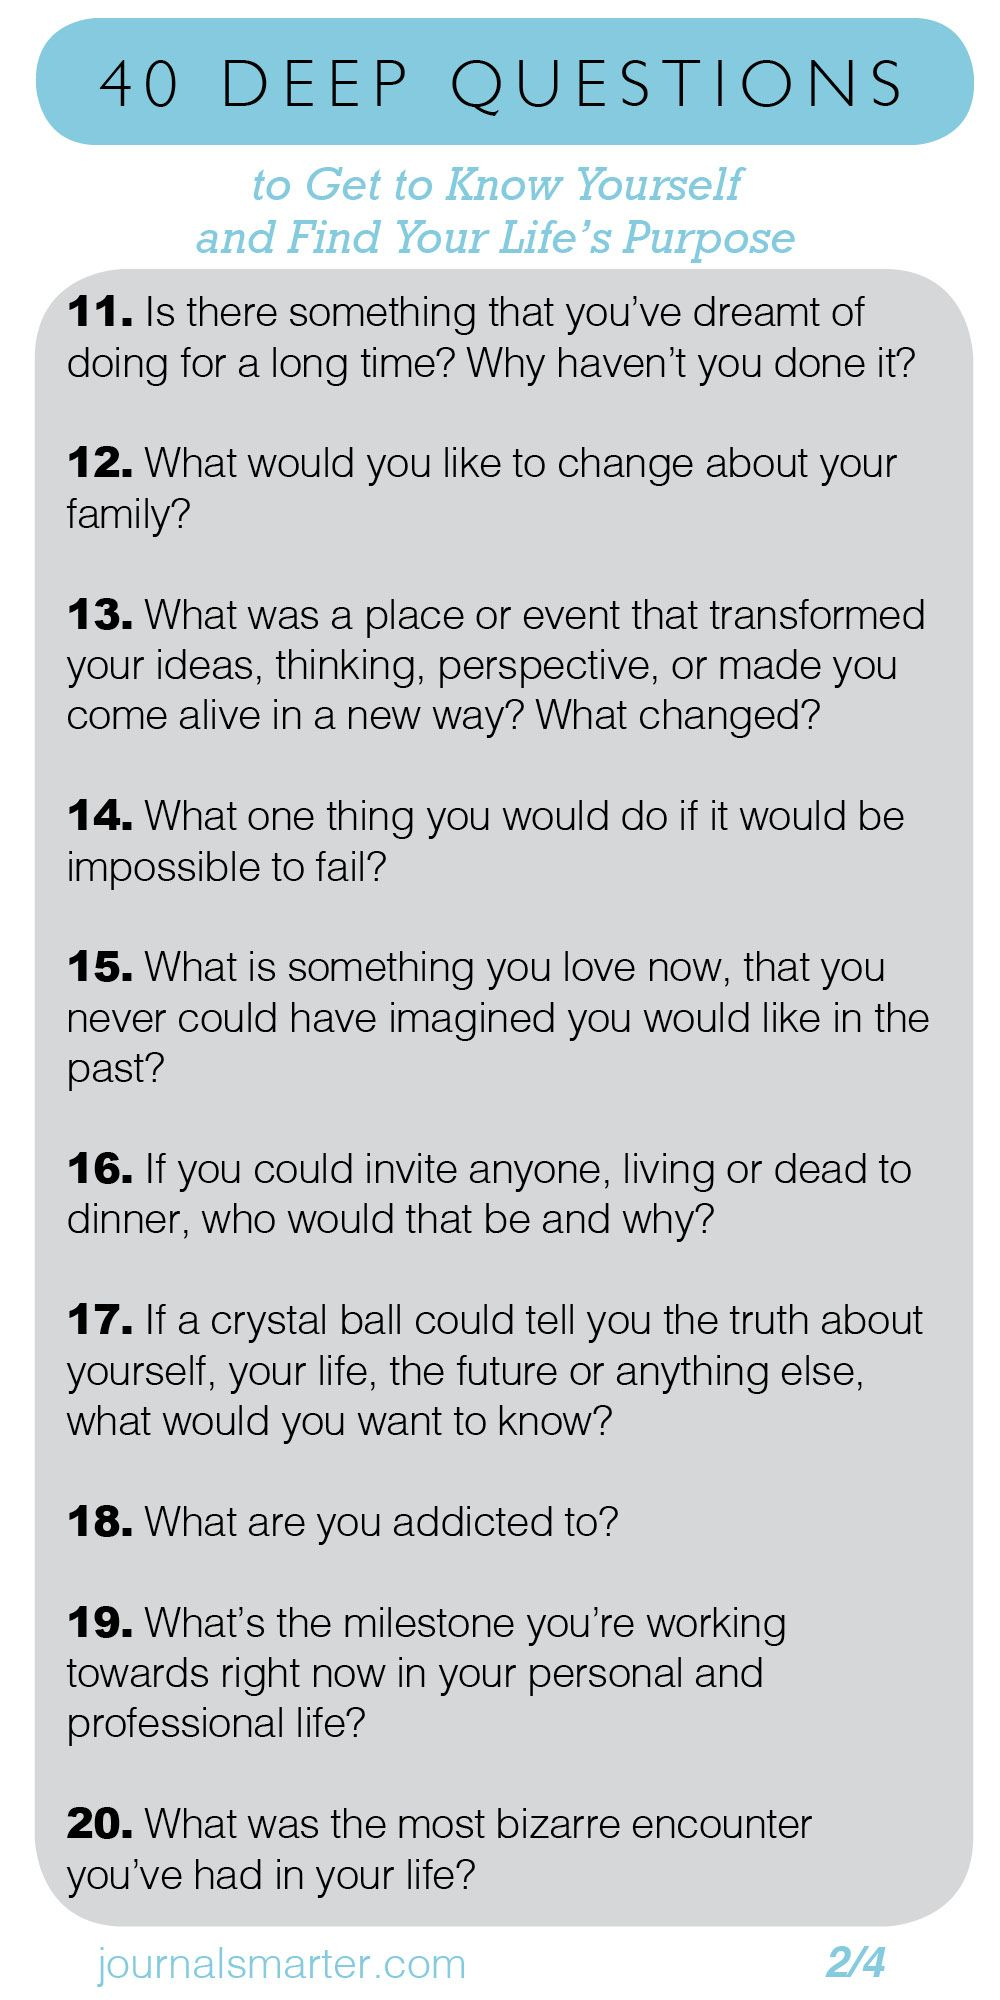 40 Deep Questions To Get To Know Yourself and Your Life Purpose 2/4